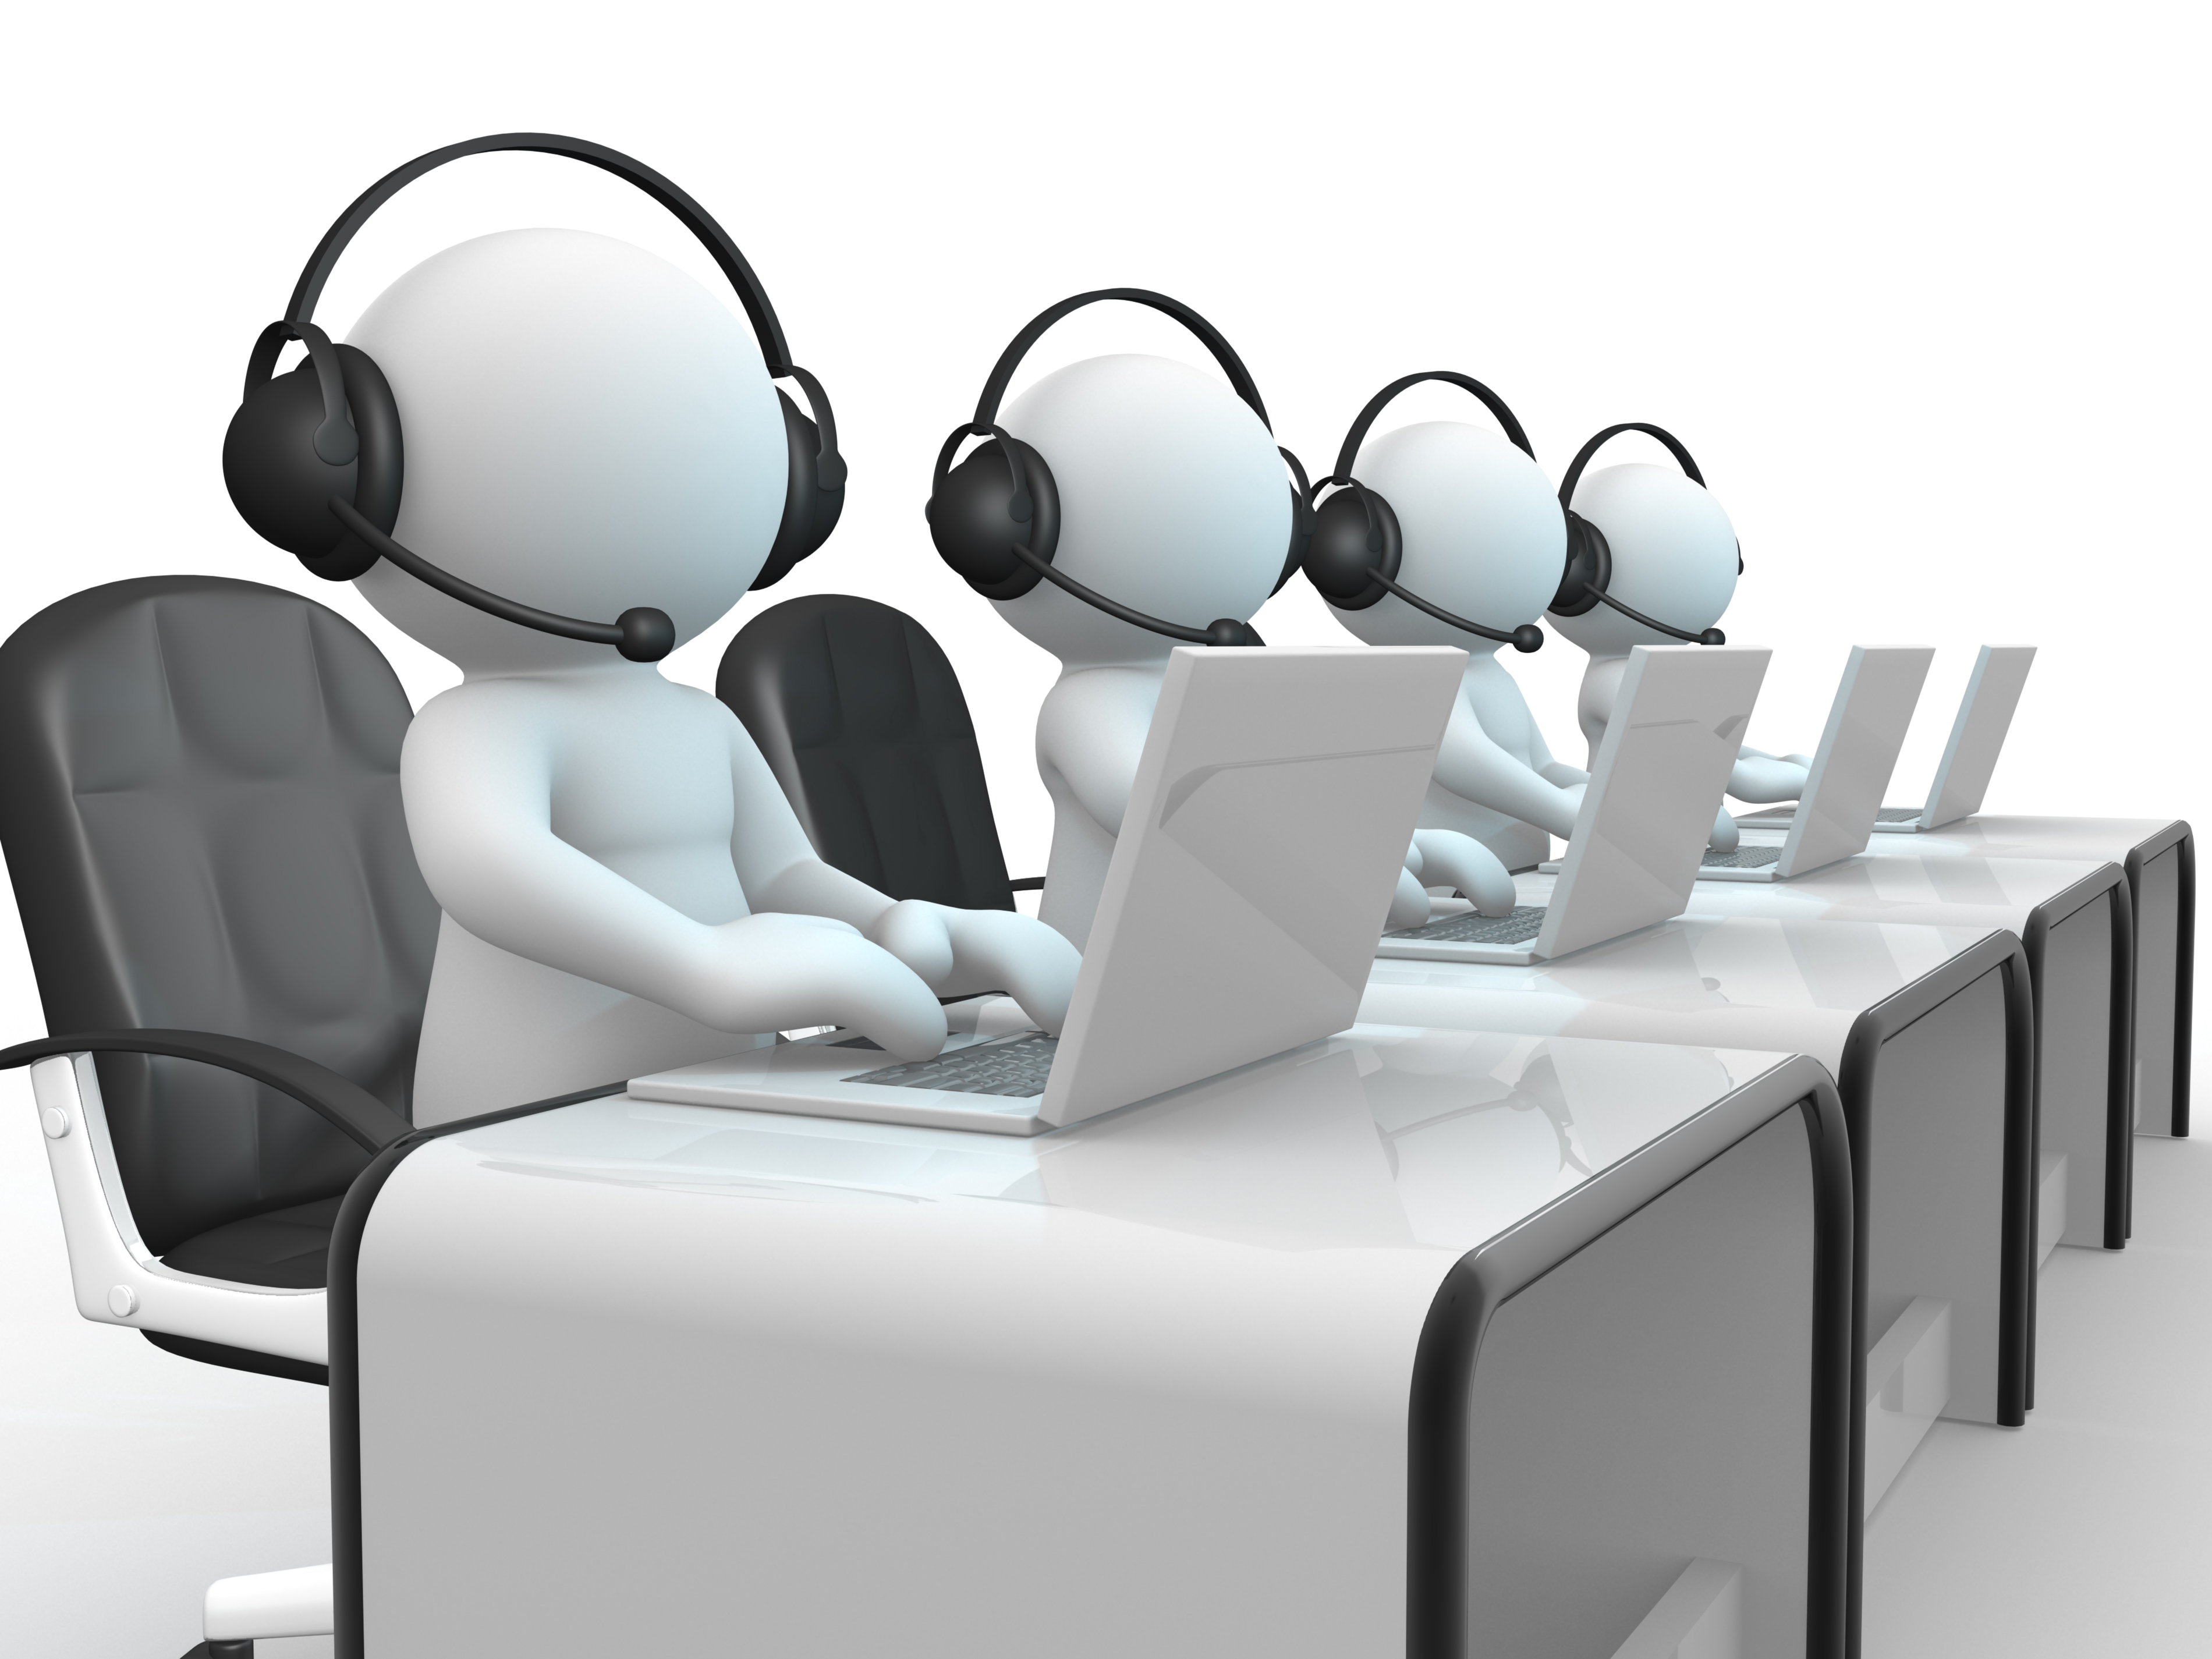 is-seth-godin-s-advice-good-for-call-centers-jz2hdx-clipart